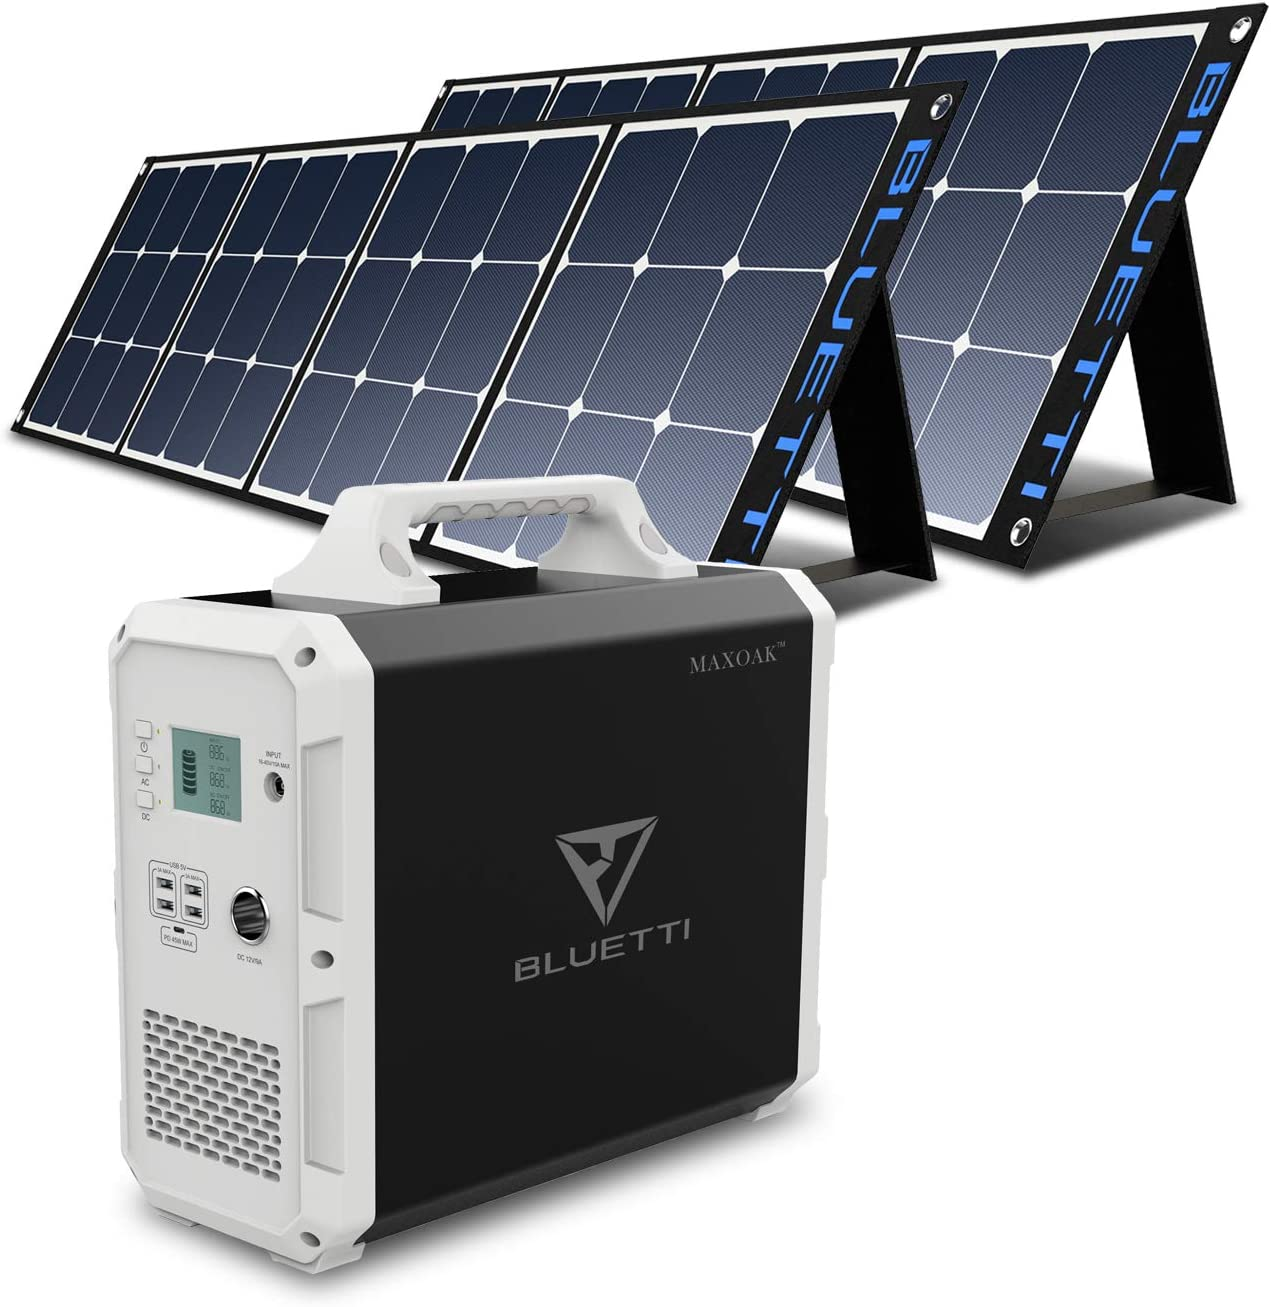 BLUETTI EB150 Portable Power Station with 2Pcs SP200 200W Solar Panel Included, Solar Generator 1000W AC Inverter for Home Use Lithium Battery Backup Solar Bundle Kit for Power Outage RV Outdoor